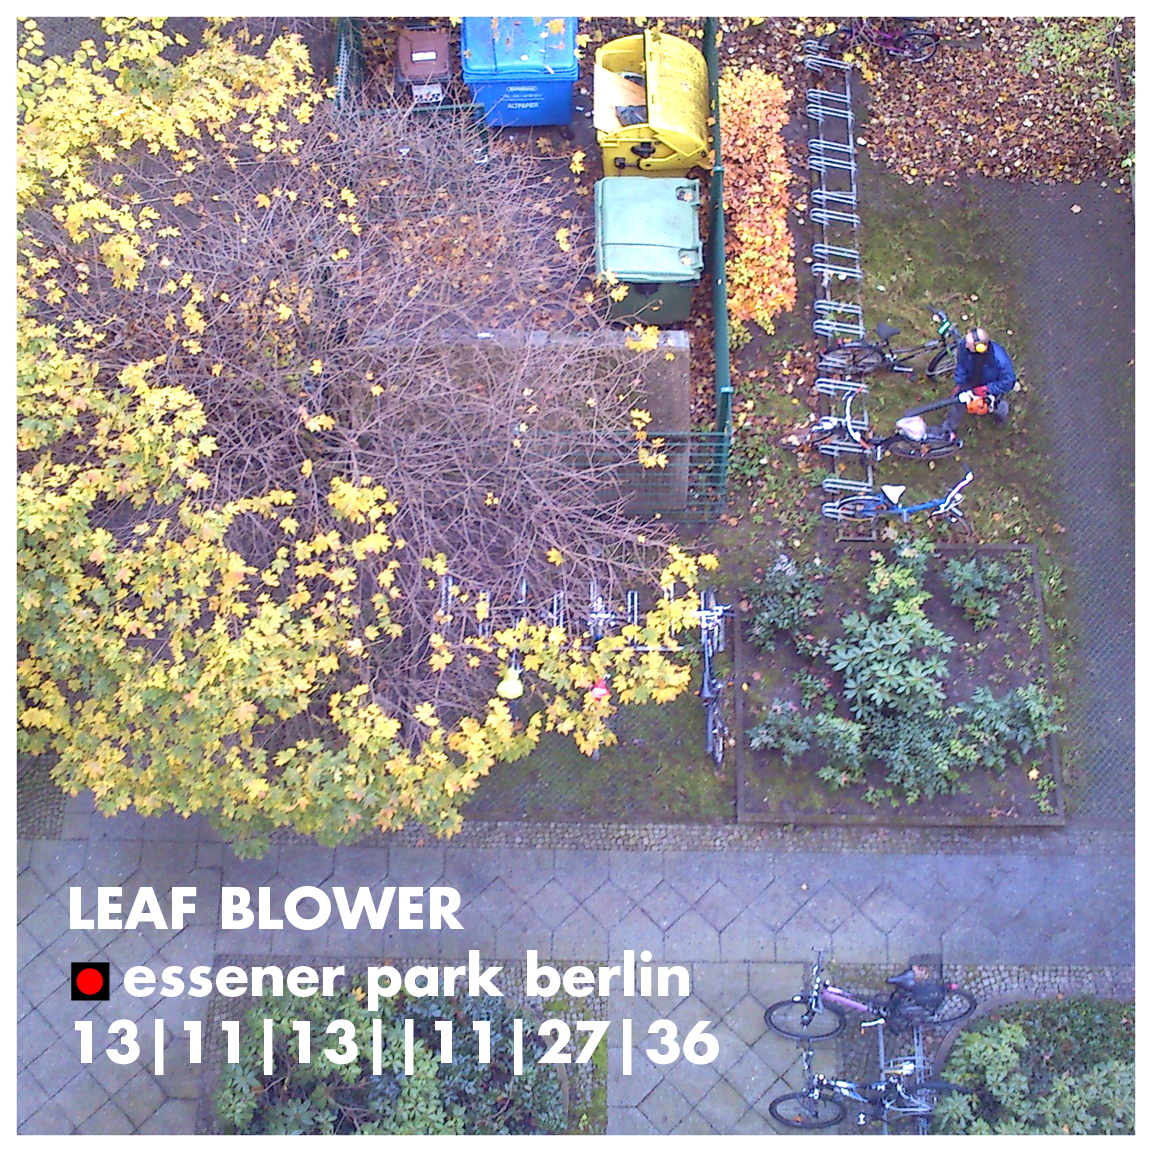 md_leafblowers